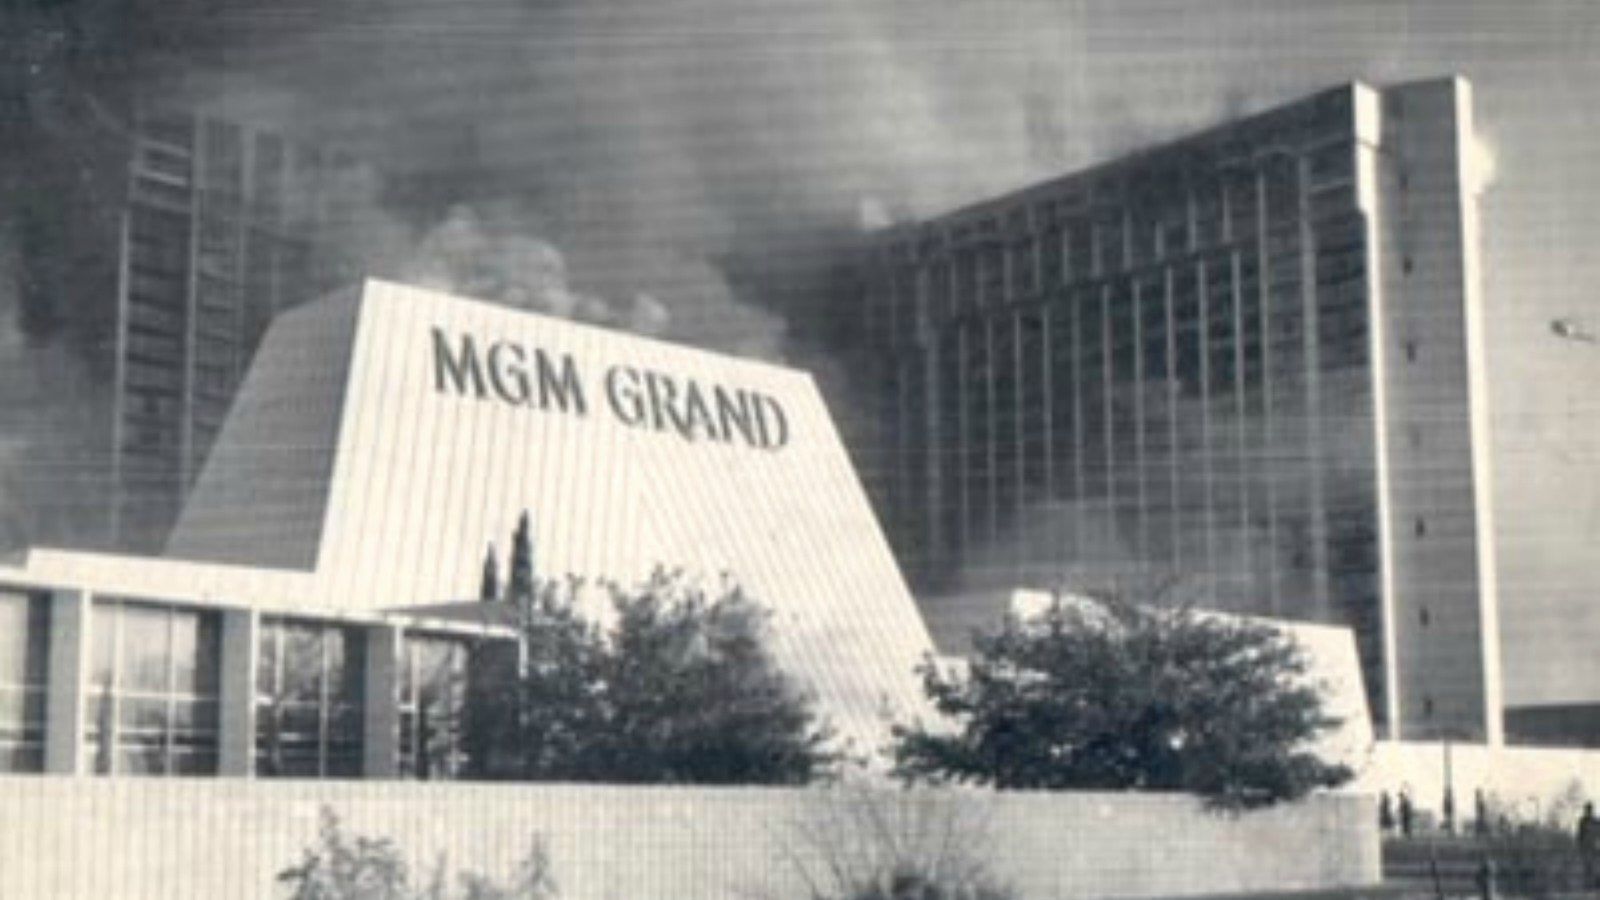 40 Years Later Reflections On The Las Vegas Mgm Grand Hotel Fire